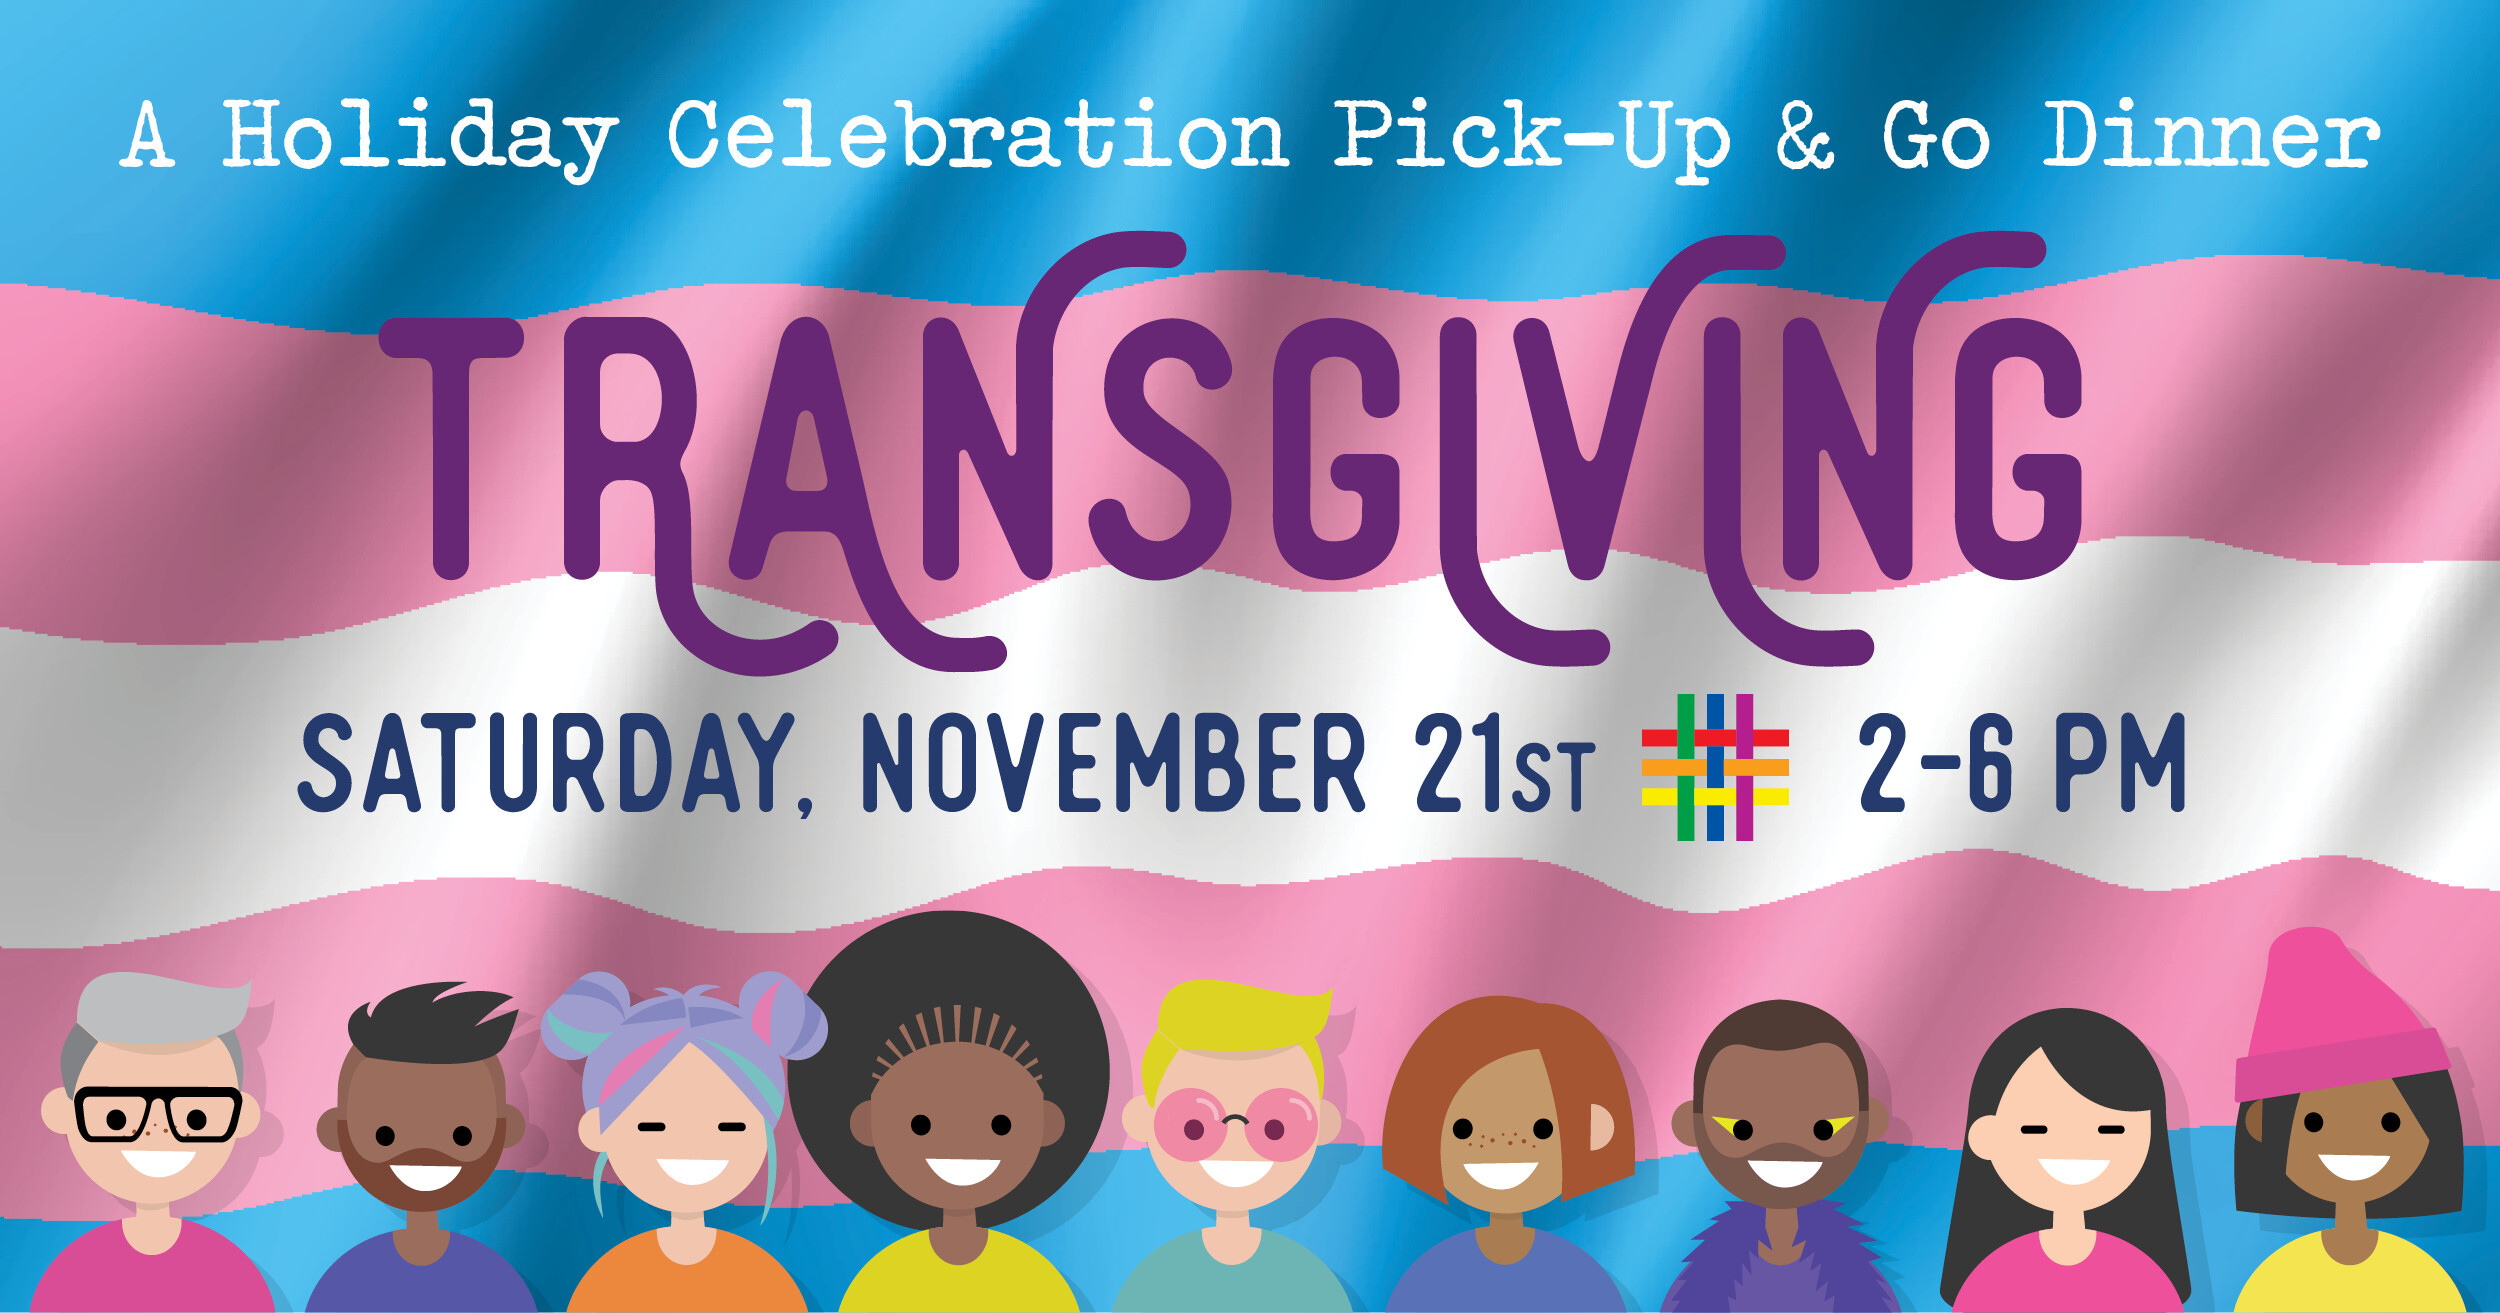 Transgiving Holiday Celebration Pick-Up & Go Dinner at Brooklyn Community Pride Center